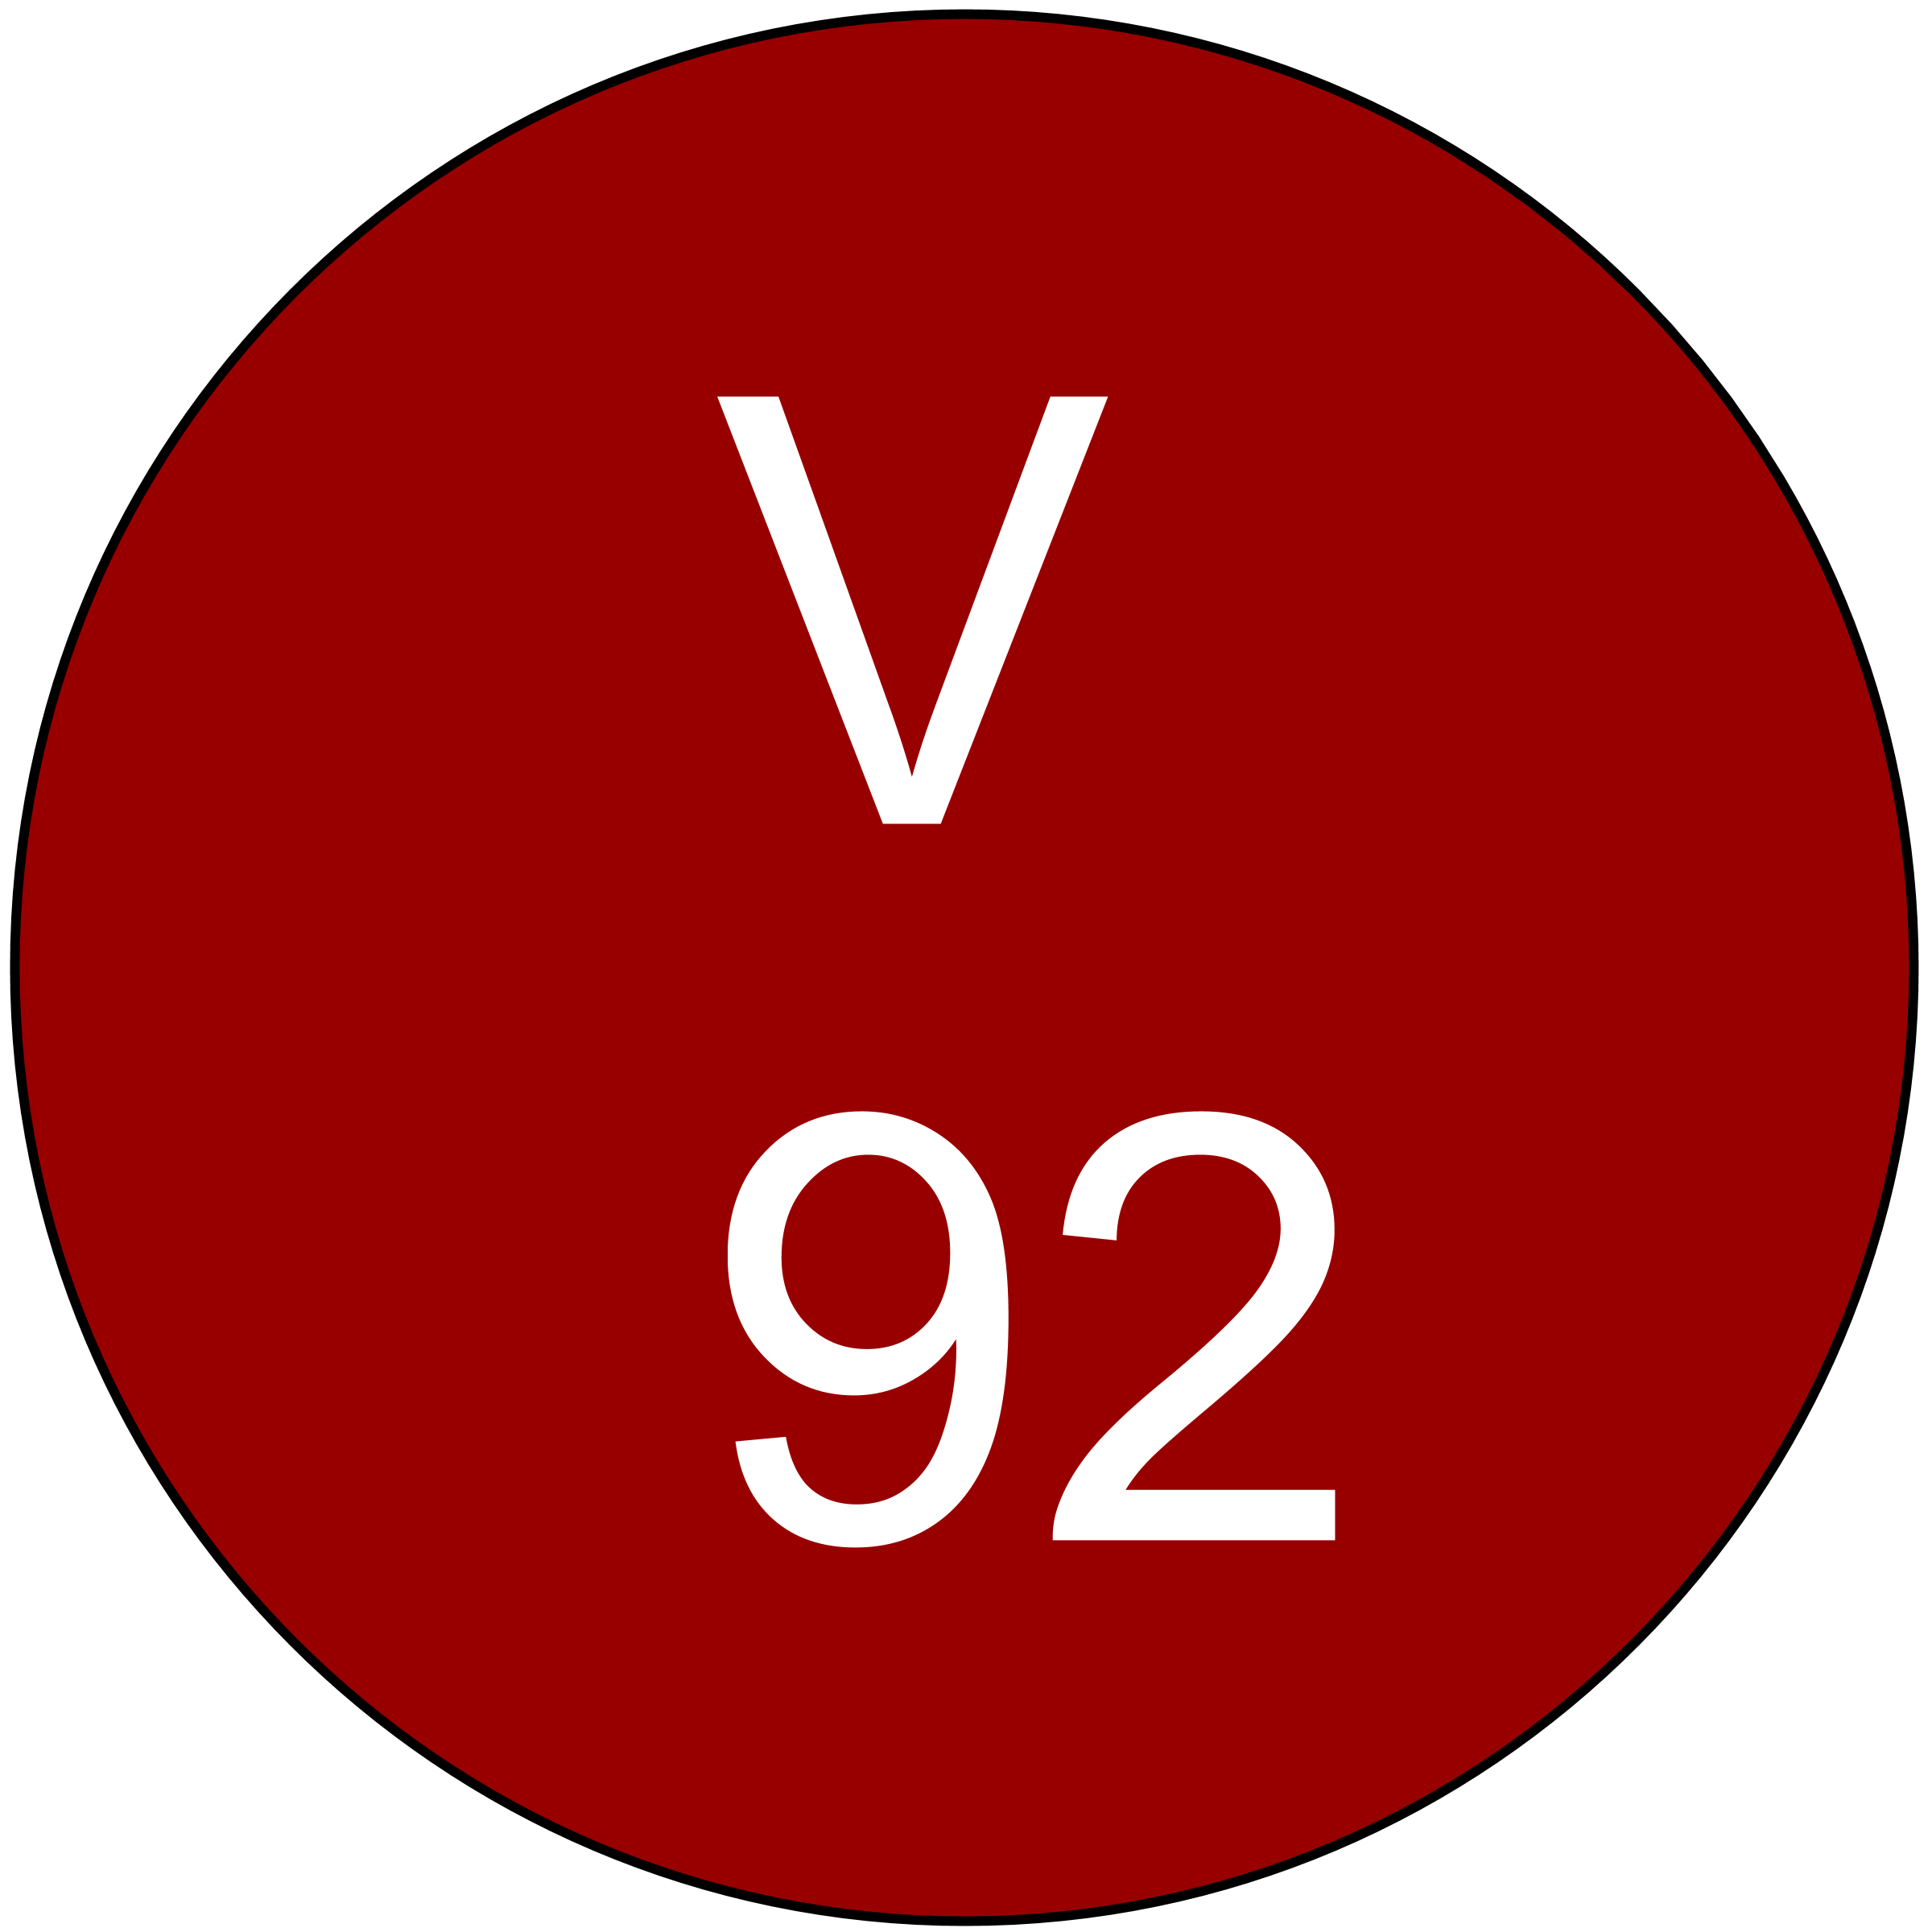 vinous-92-ratings